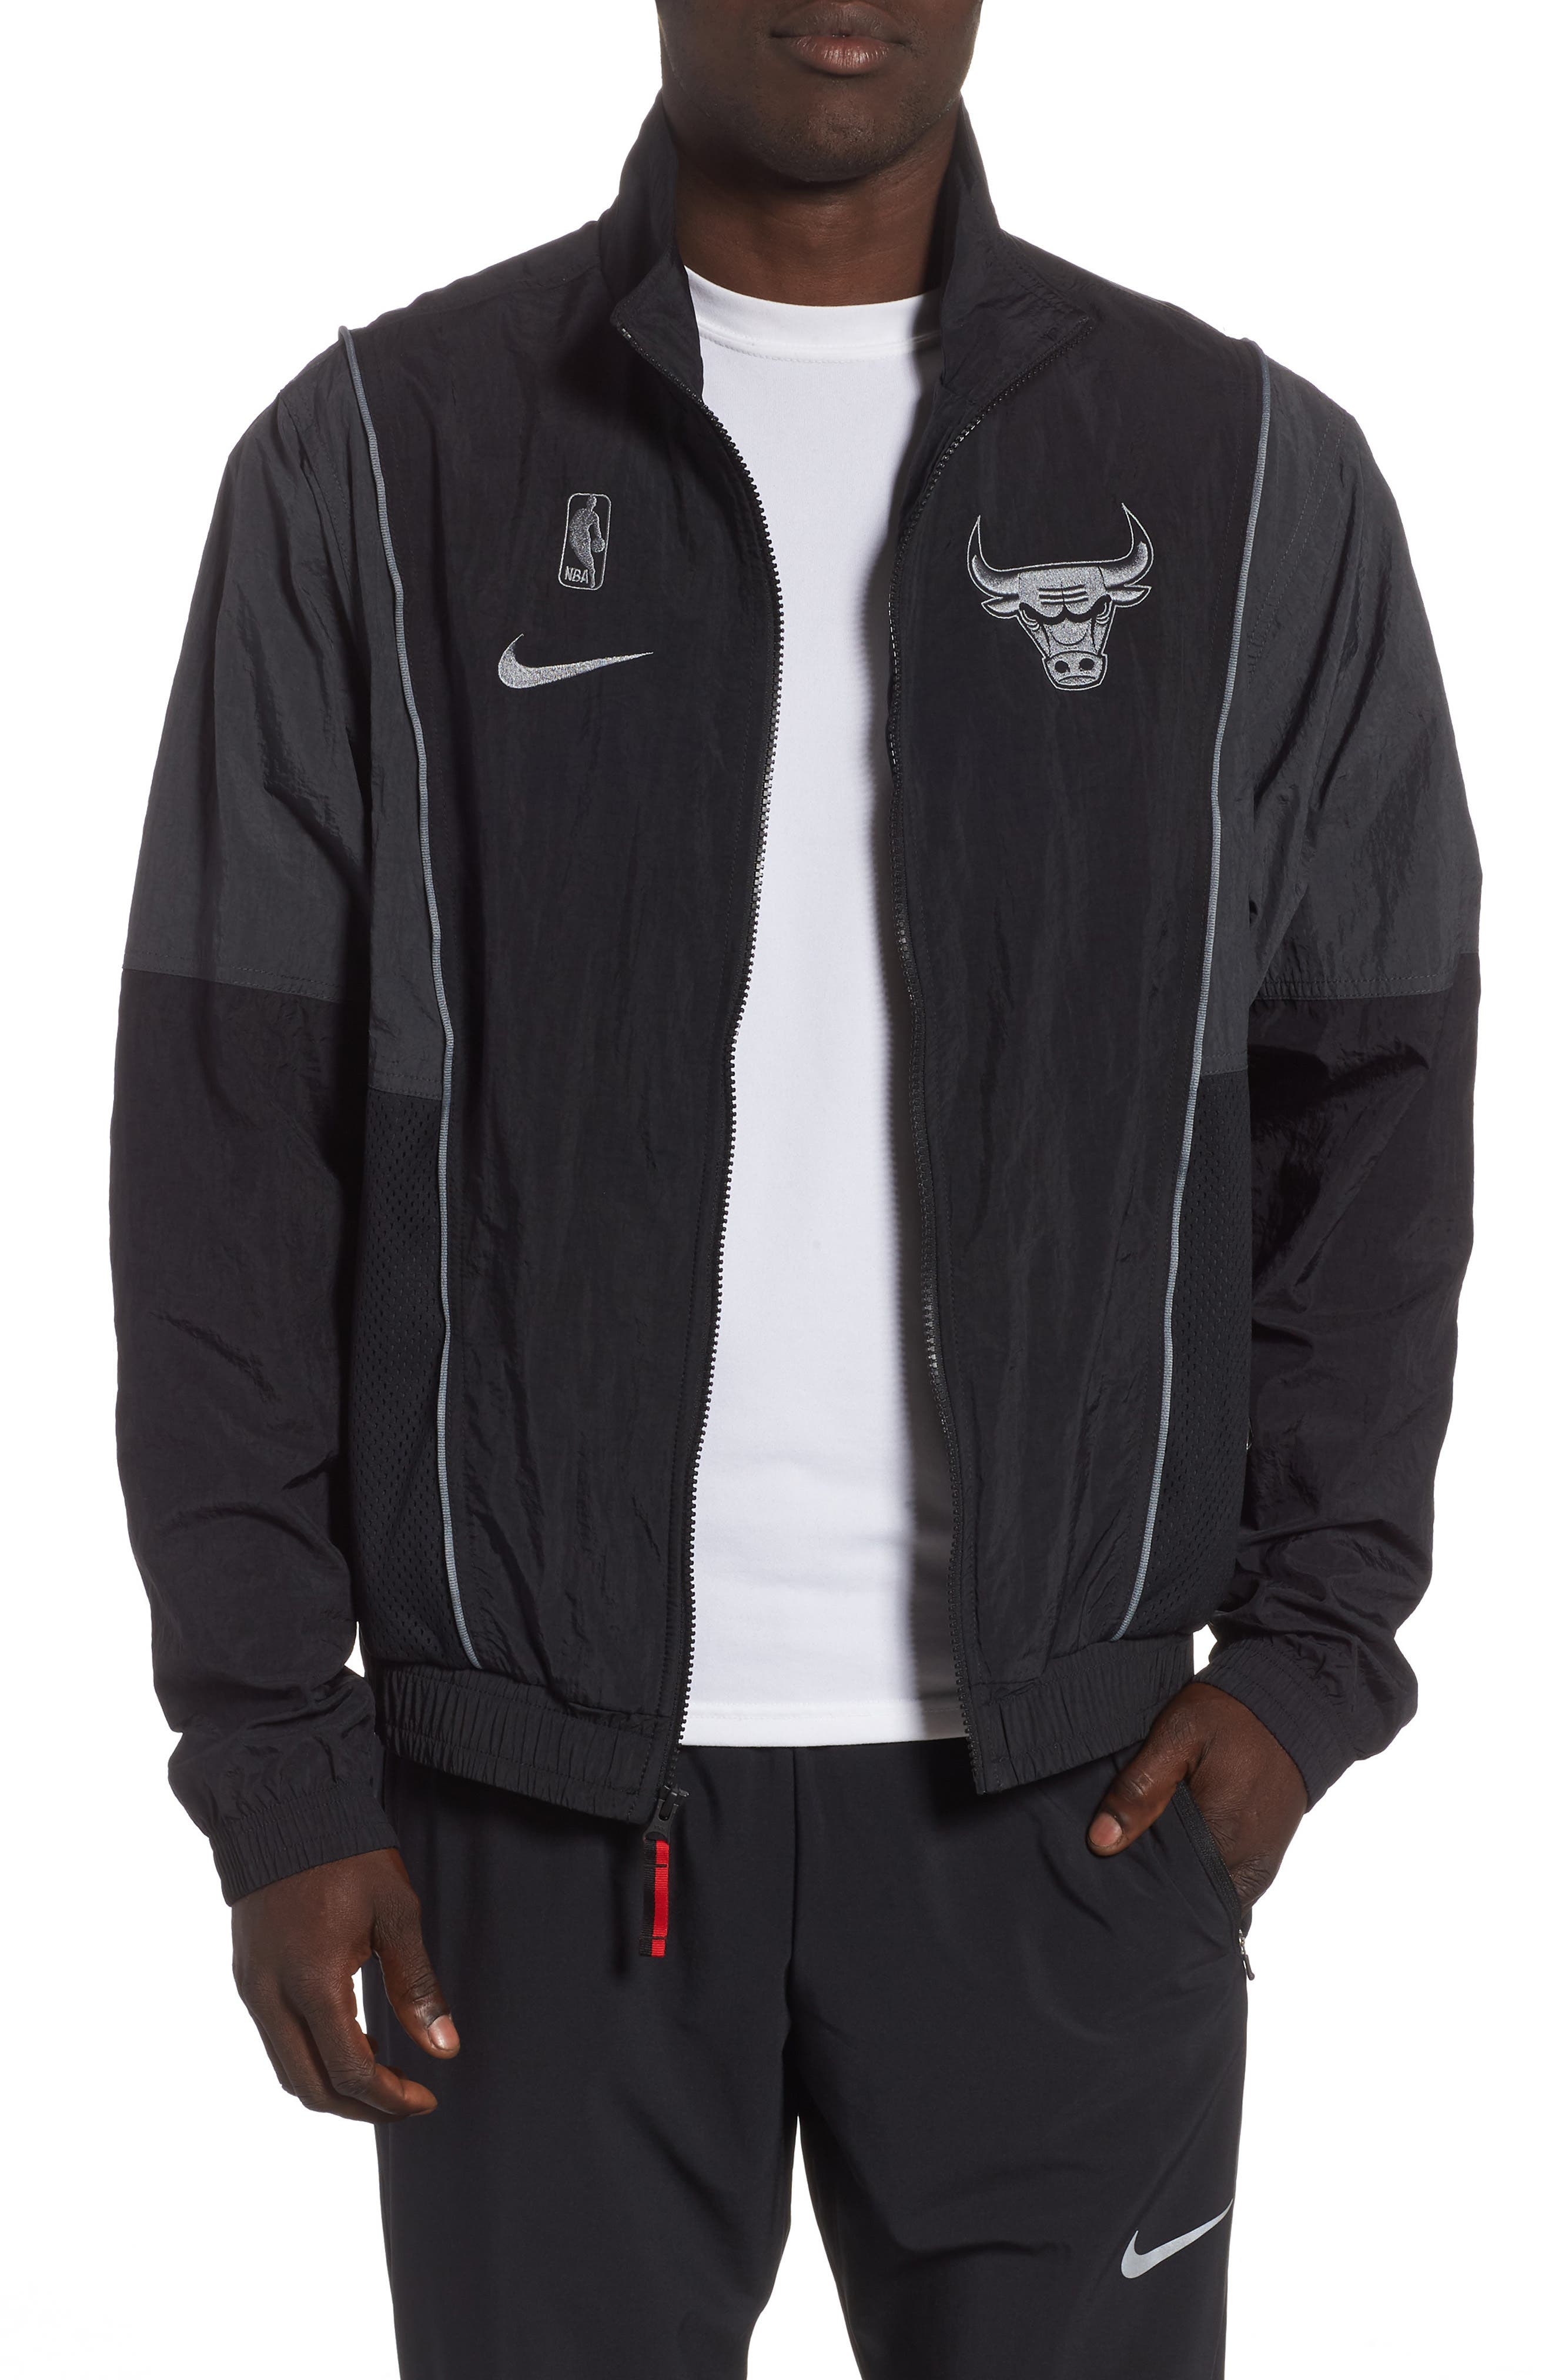 Chicago Bulls Track Jacket,                             Main thumbnail 1, color,                             BLACK/ ANTHRACITE/ COOL GREY